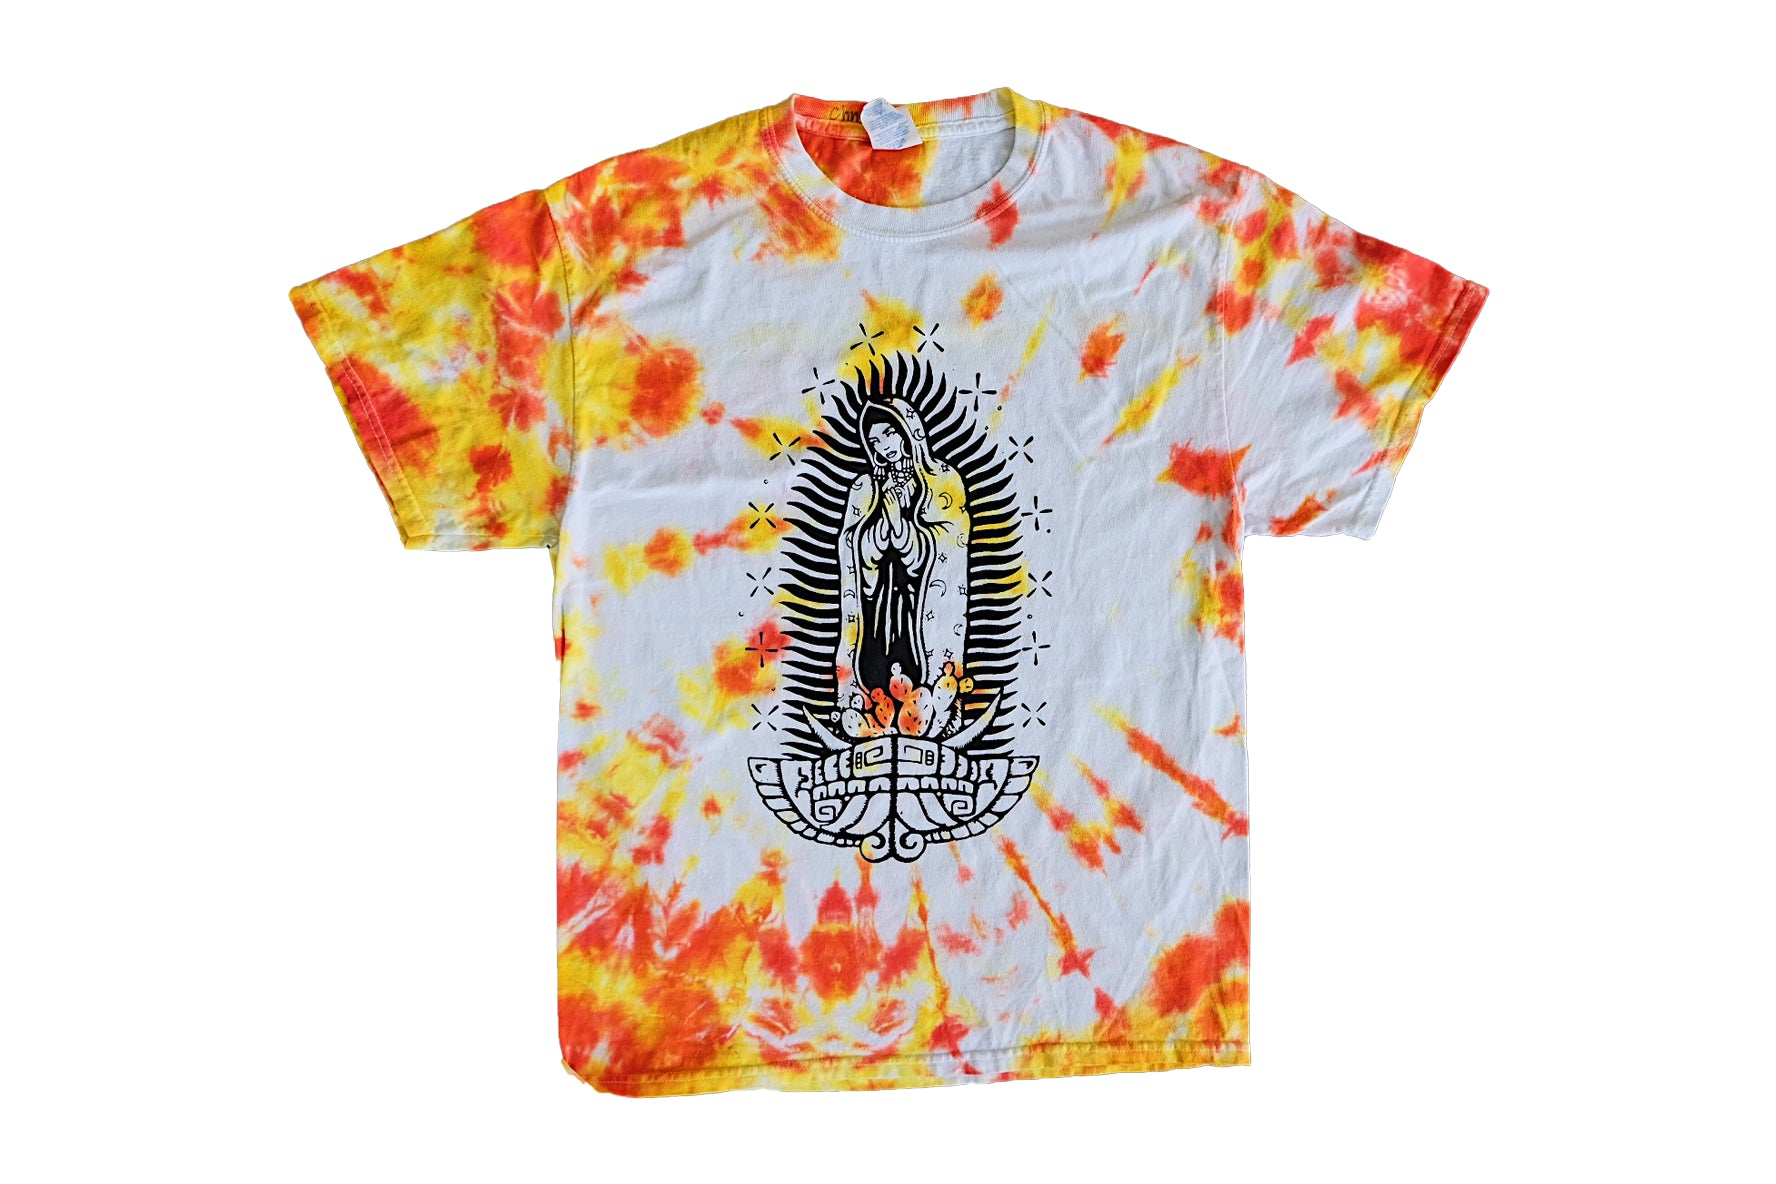 HOT CHEETO Virgencita Vintage Tie Dye Tee